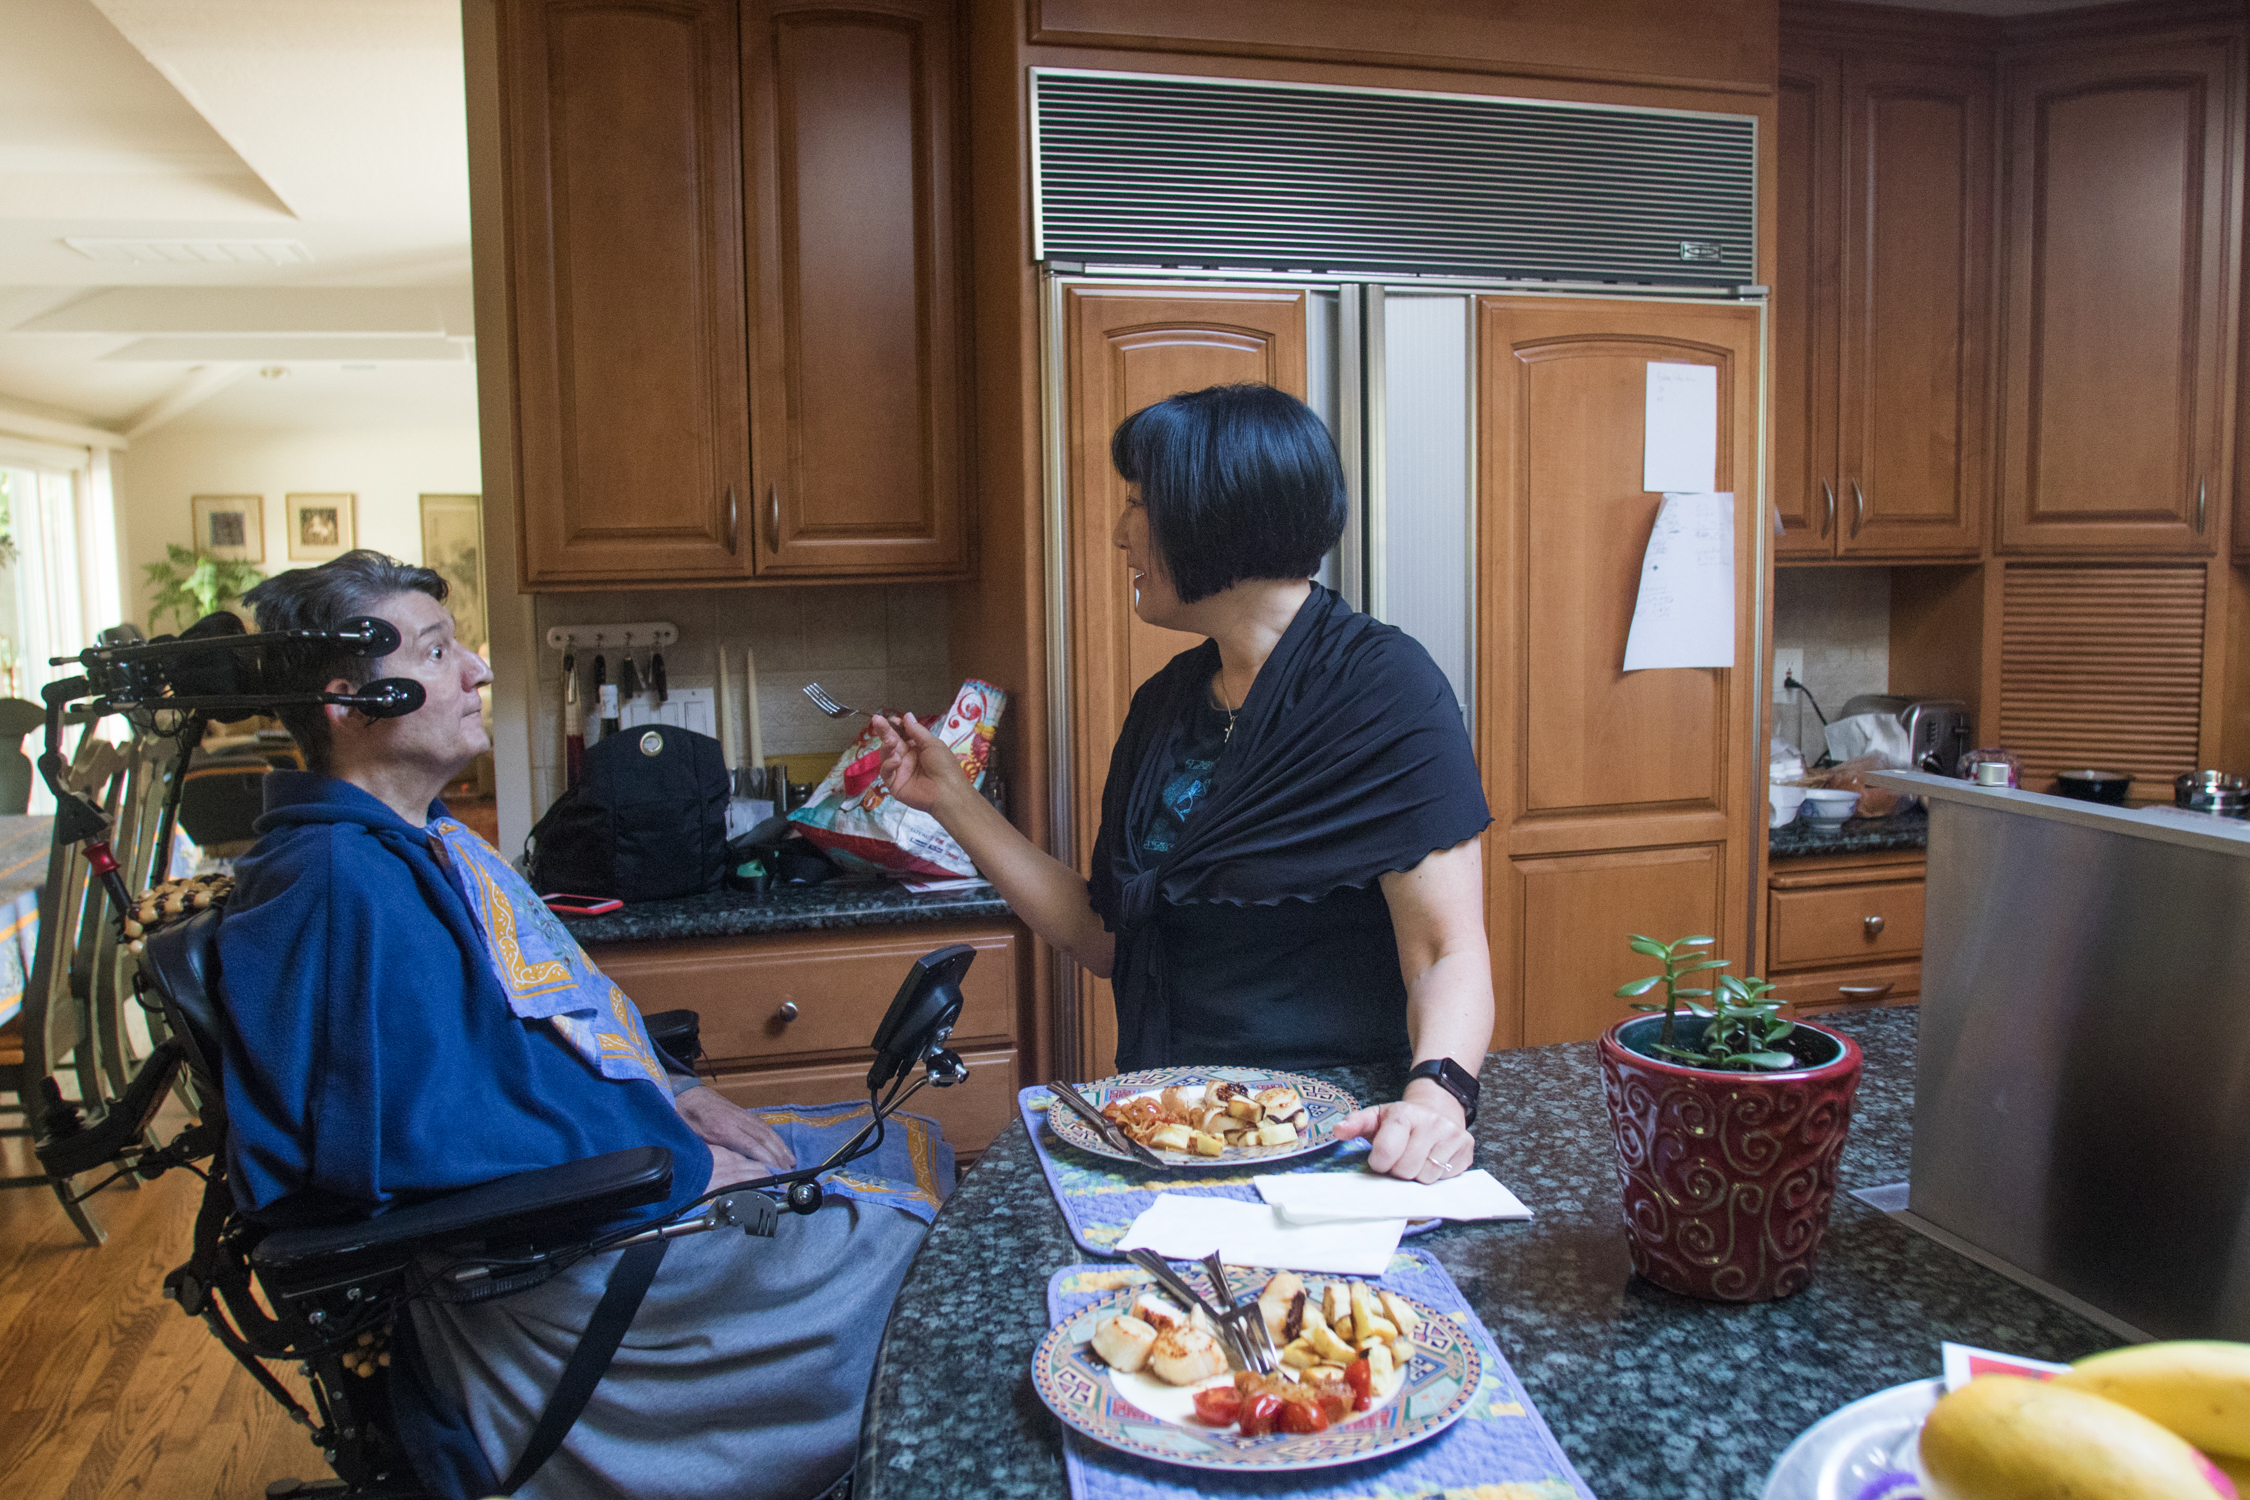 After preparing a dinner of scallops, sweet potatoes, grilled tomatoes and fennel, Karen Kang feeds Jon Ferraiolo at the kitchen counter on April 27, 2018.